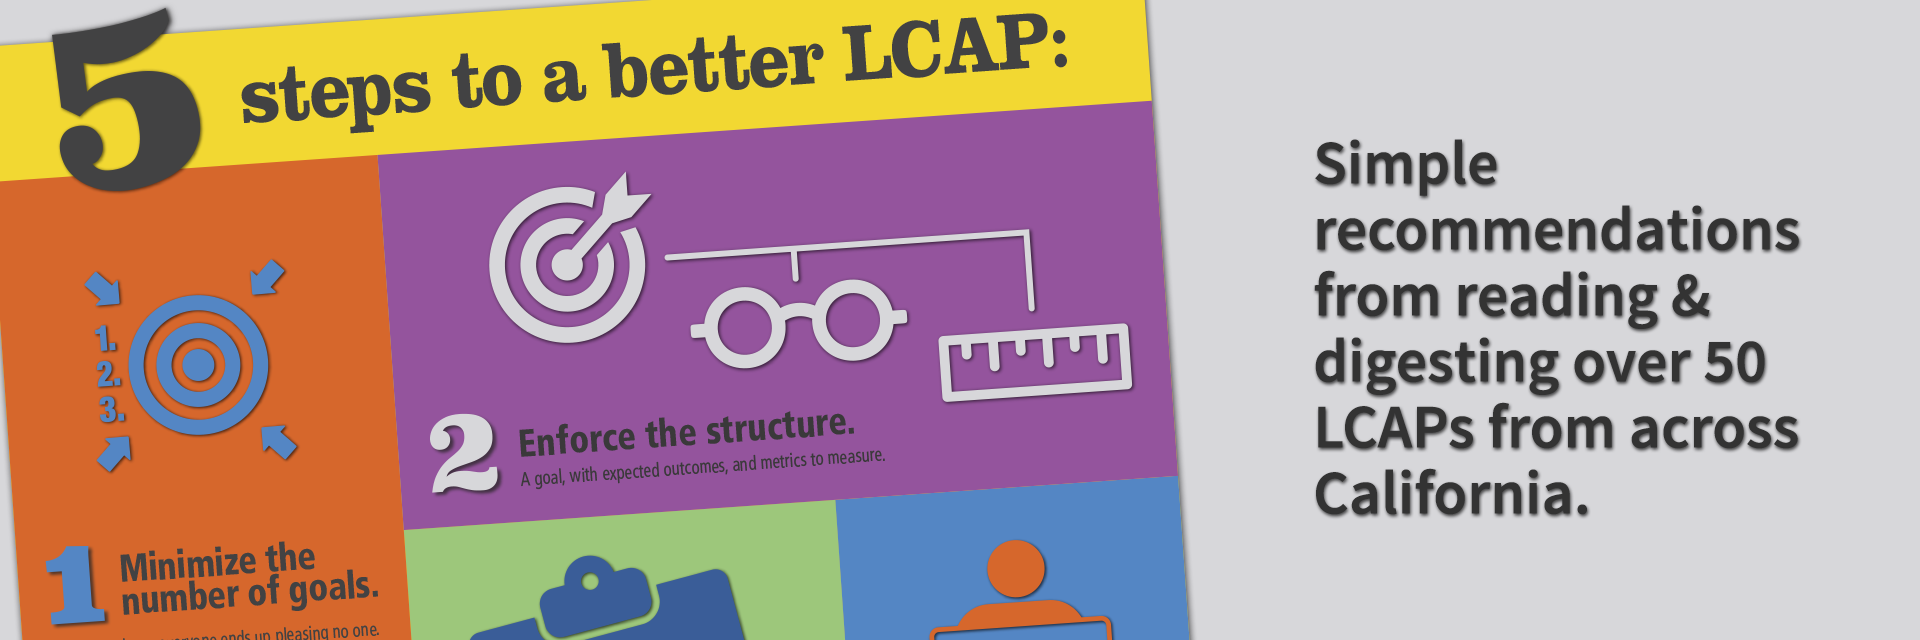 5 steps to a better LCAP